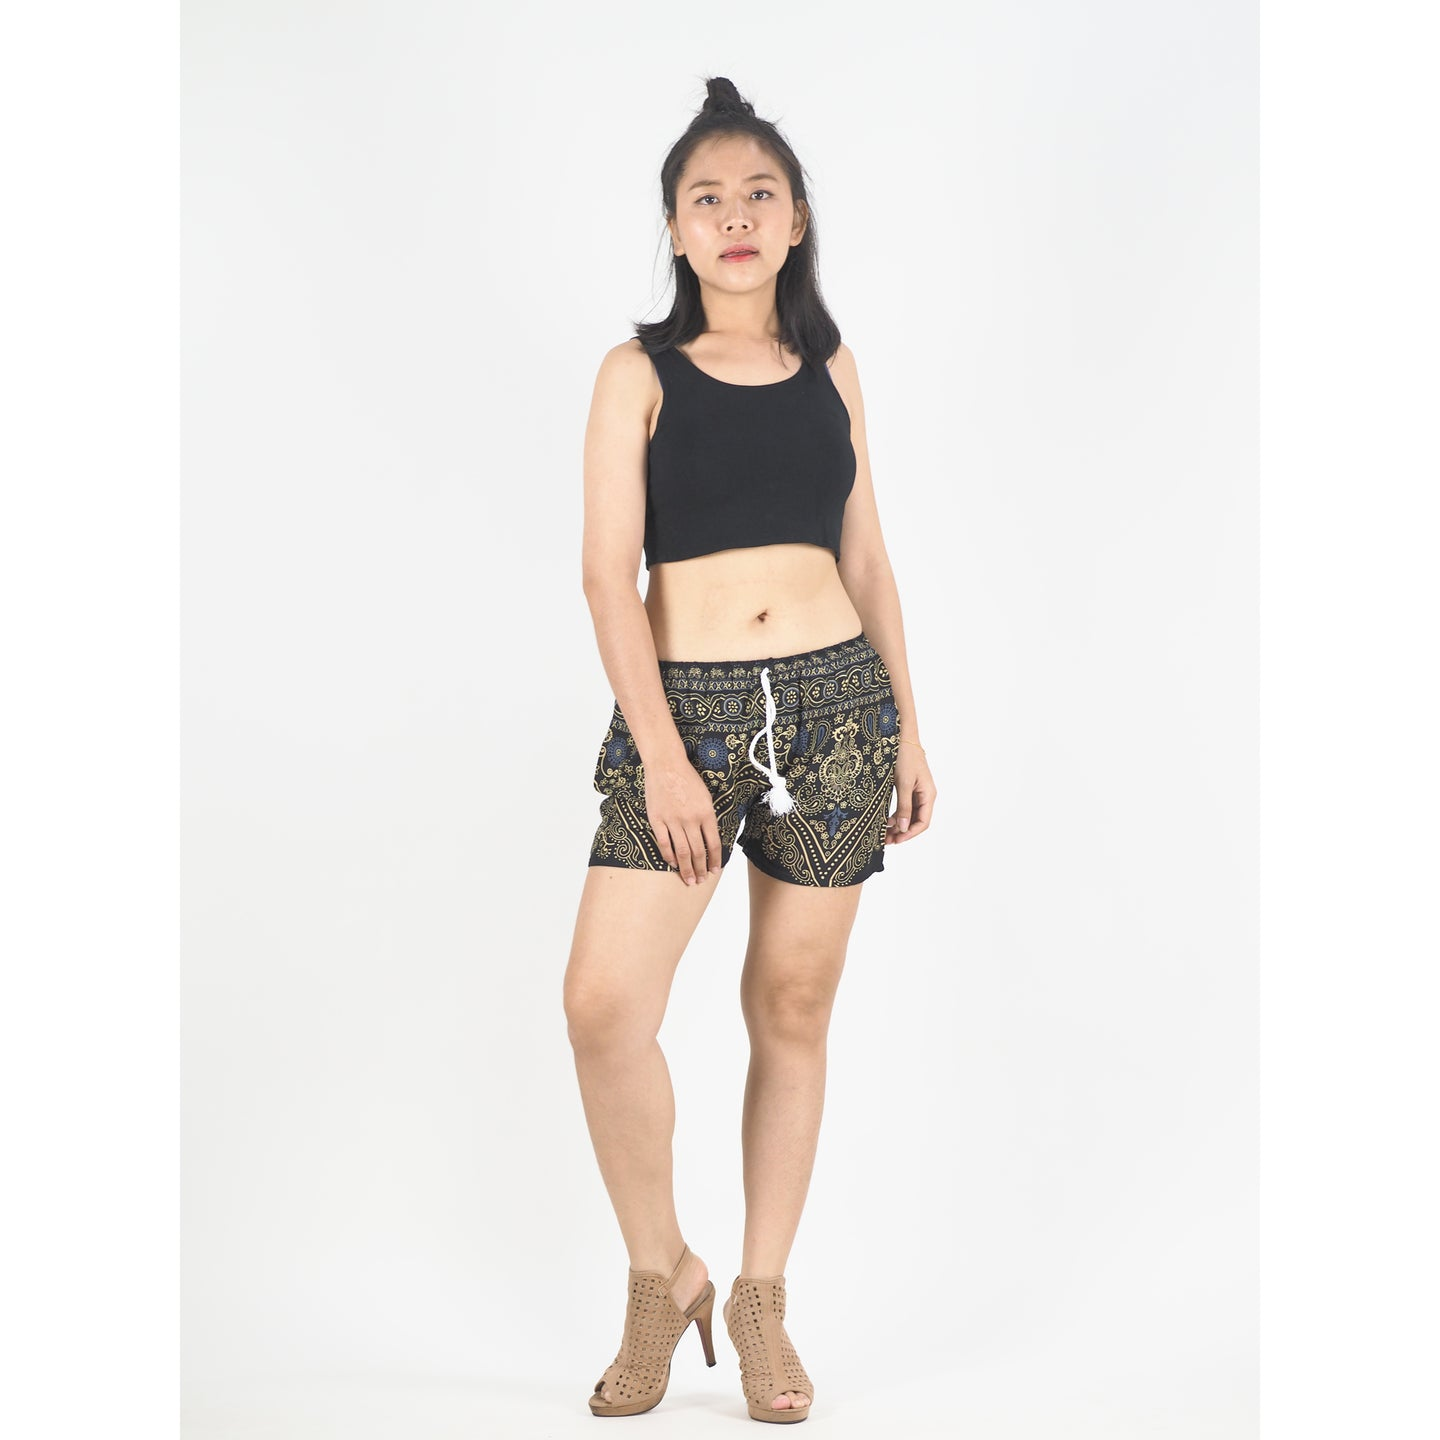 Temple Flower Women's Shorts Drawstring Genie Pants in Navy Blue PP0142 020159 04